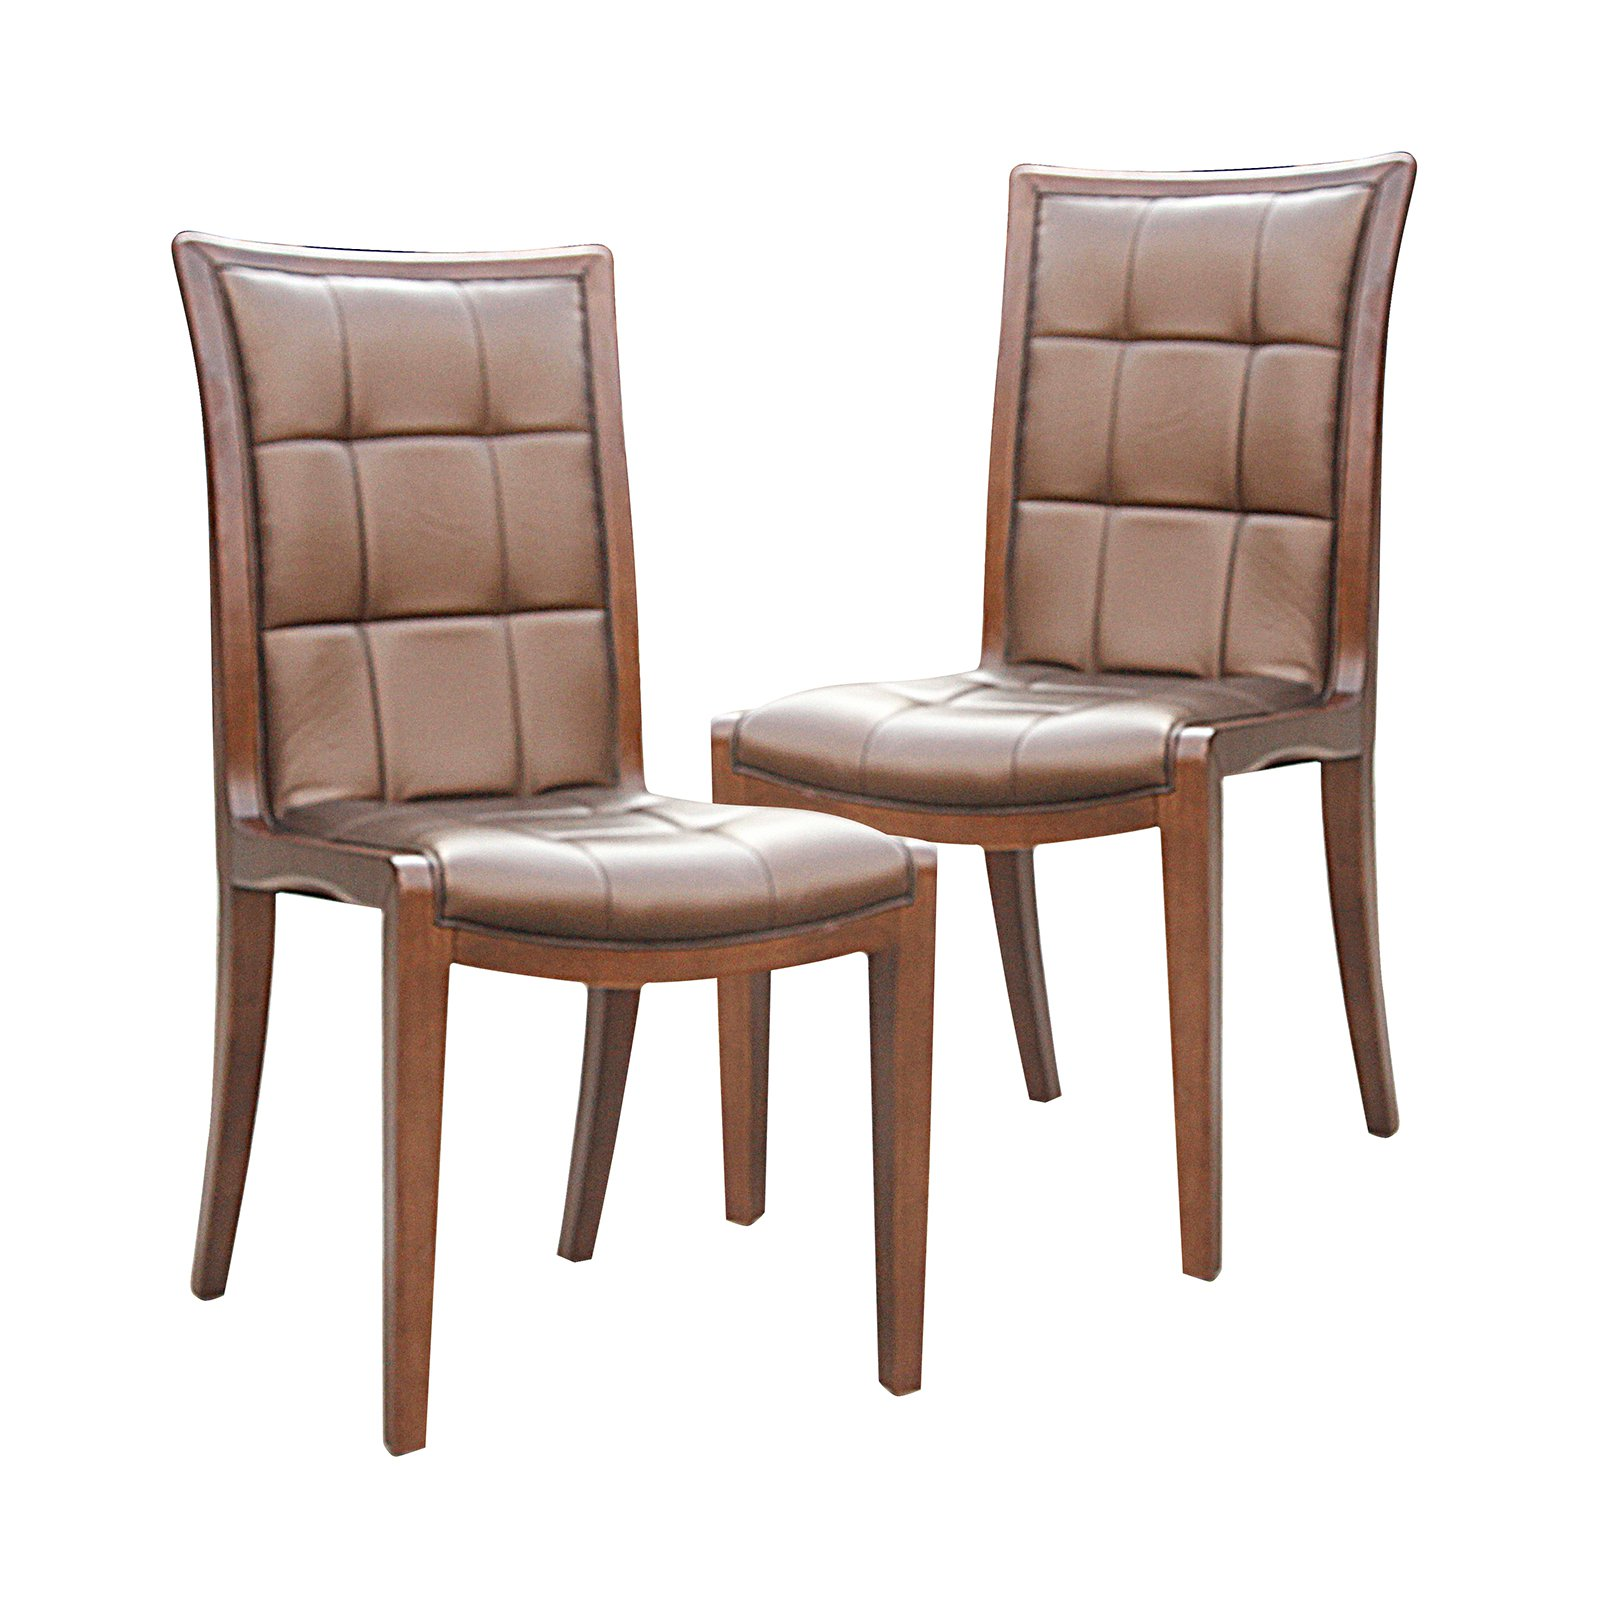 Ceets Executor Dining Chair - Set of 2